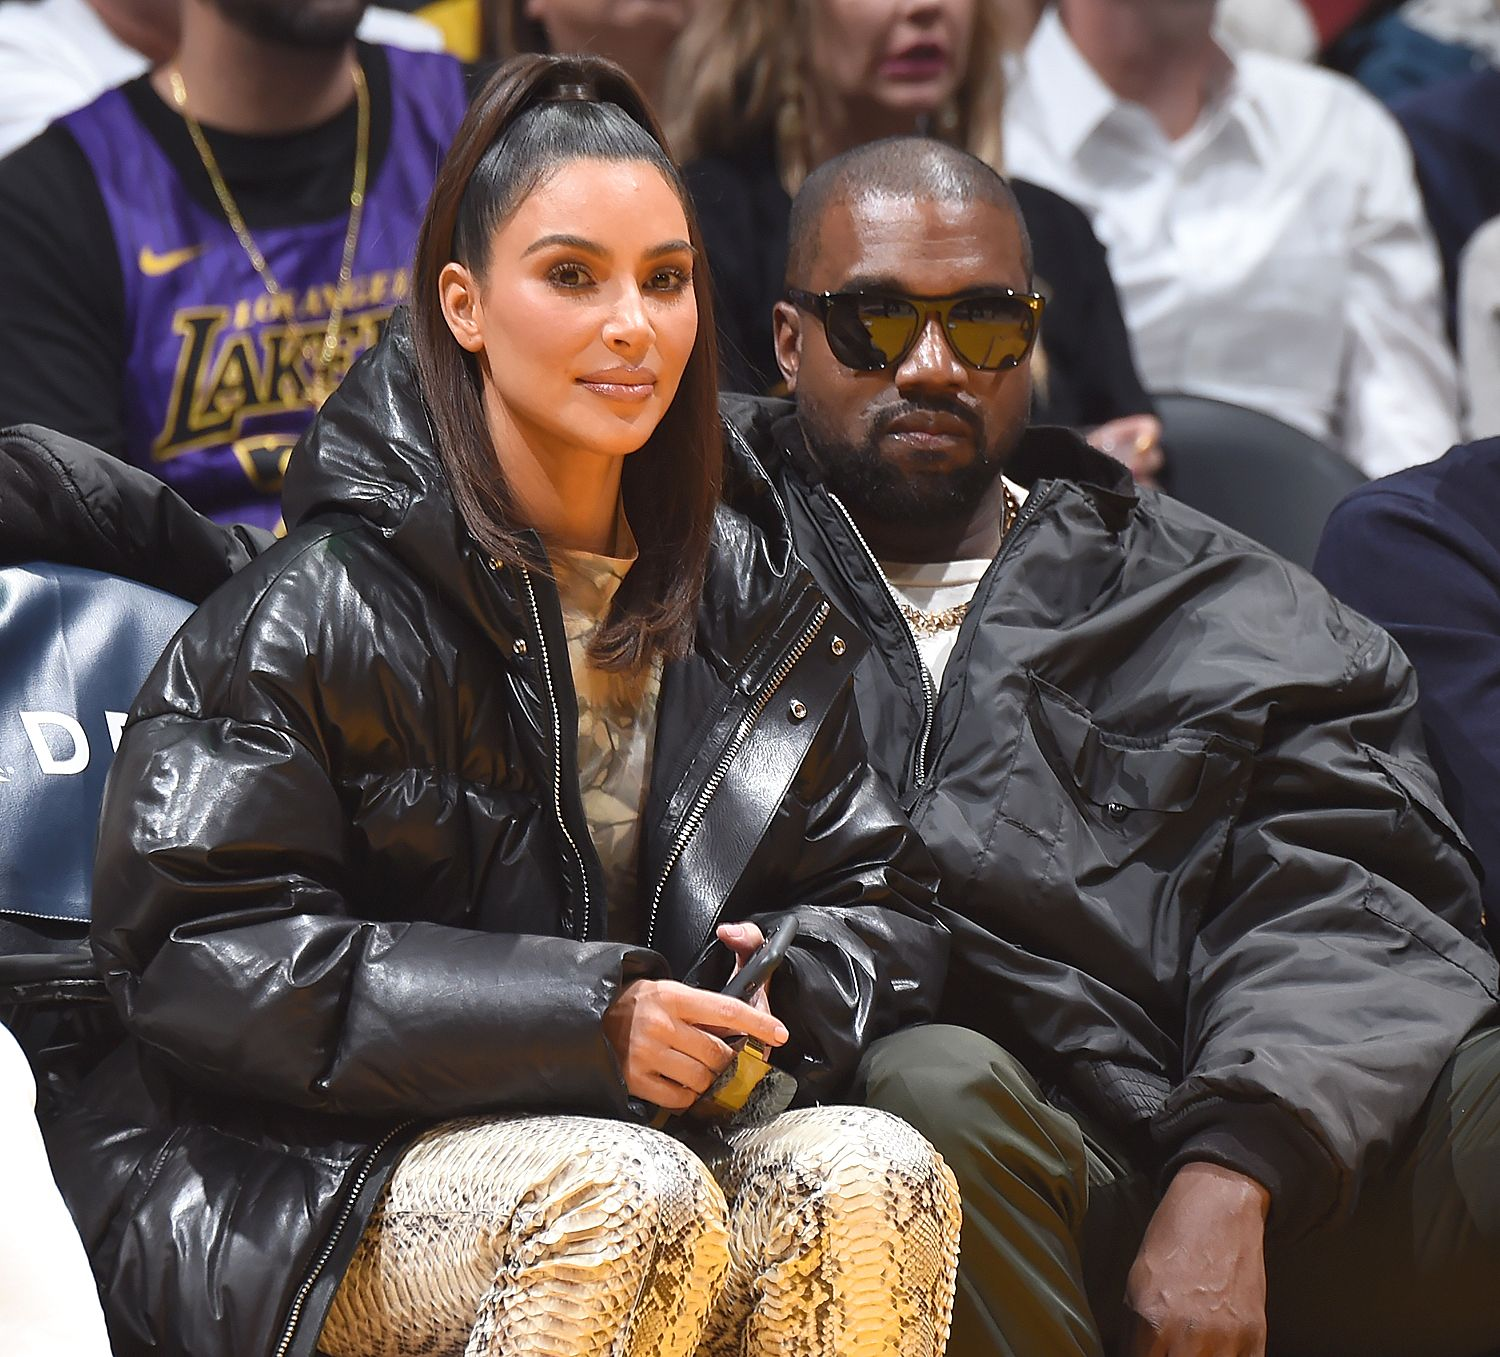 Kim Kardashian And Kanye West Sit Courtside As Khloe S Ex Tristan Thompson Takes On The Lakers In 2020 Kim Kardashian Kanye West Kim Kardashian Kim Kardashian And Kanye